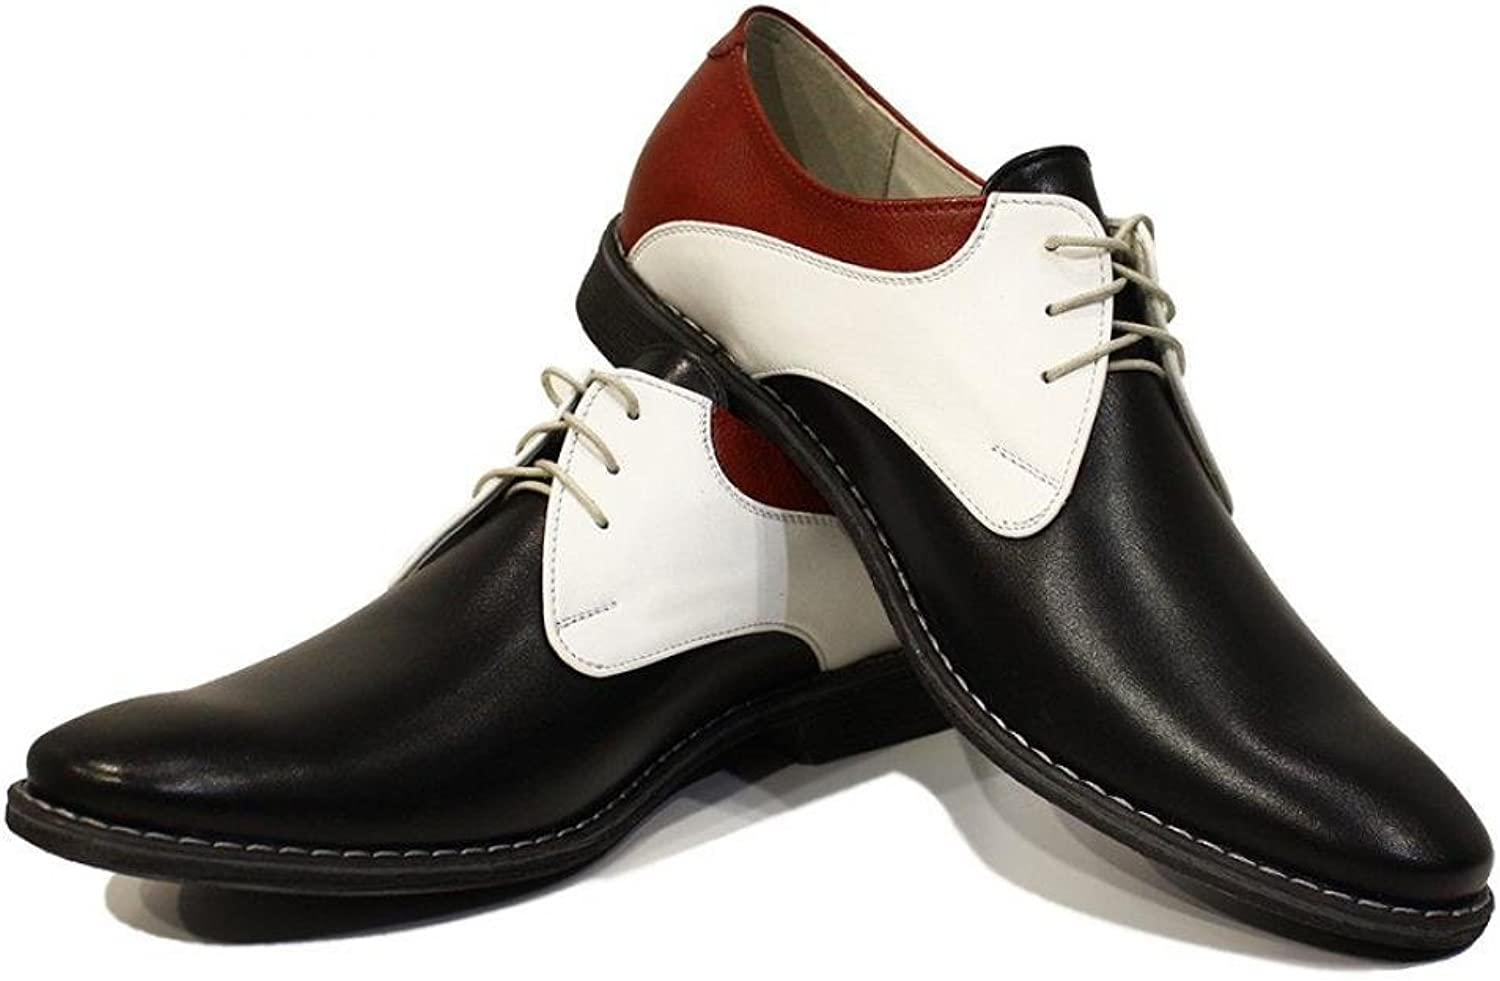 Modello Fabio - Handmade Italian Leather Mens color colorful Oxfords Dress shoes - Cowhide Smooth Leather - Lace-Up